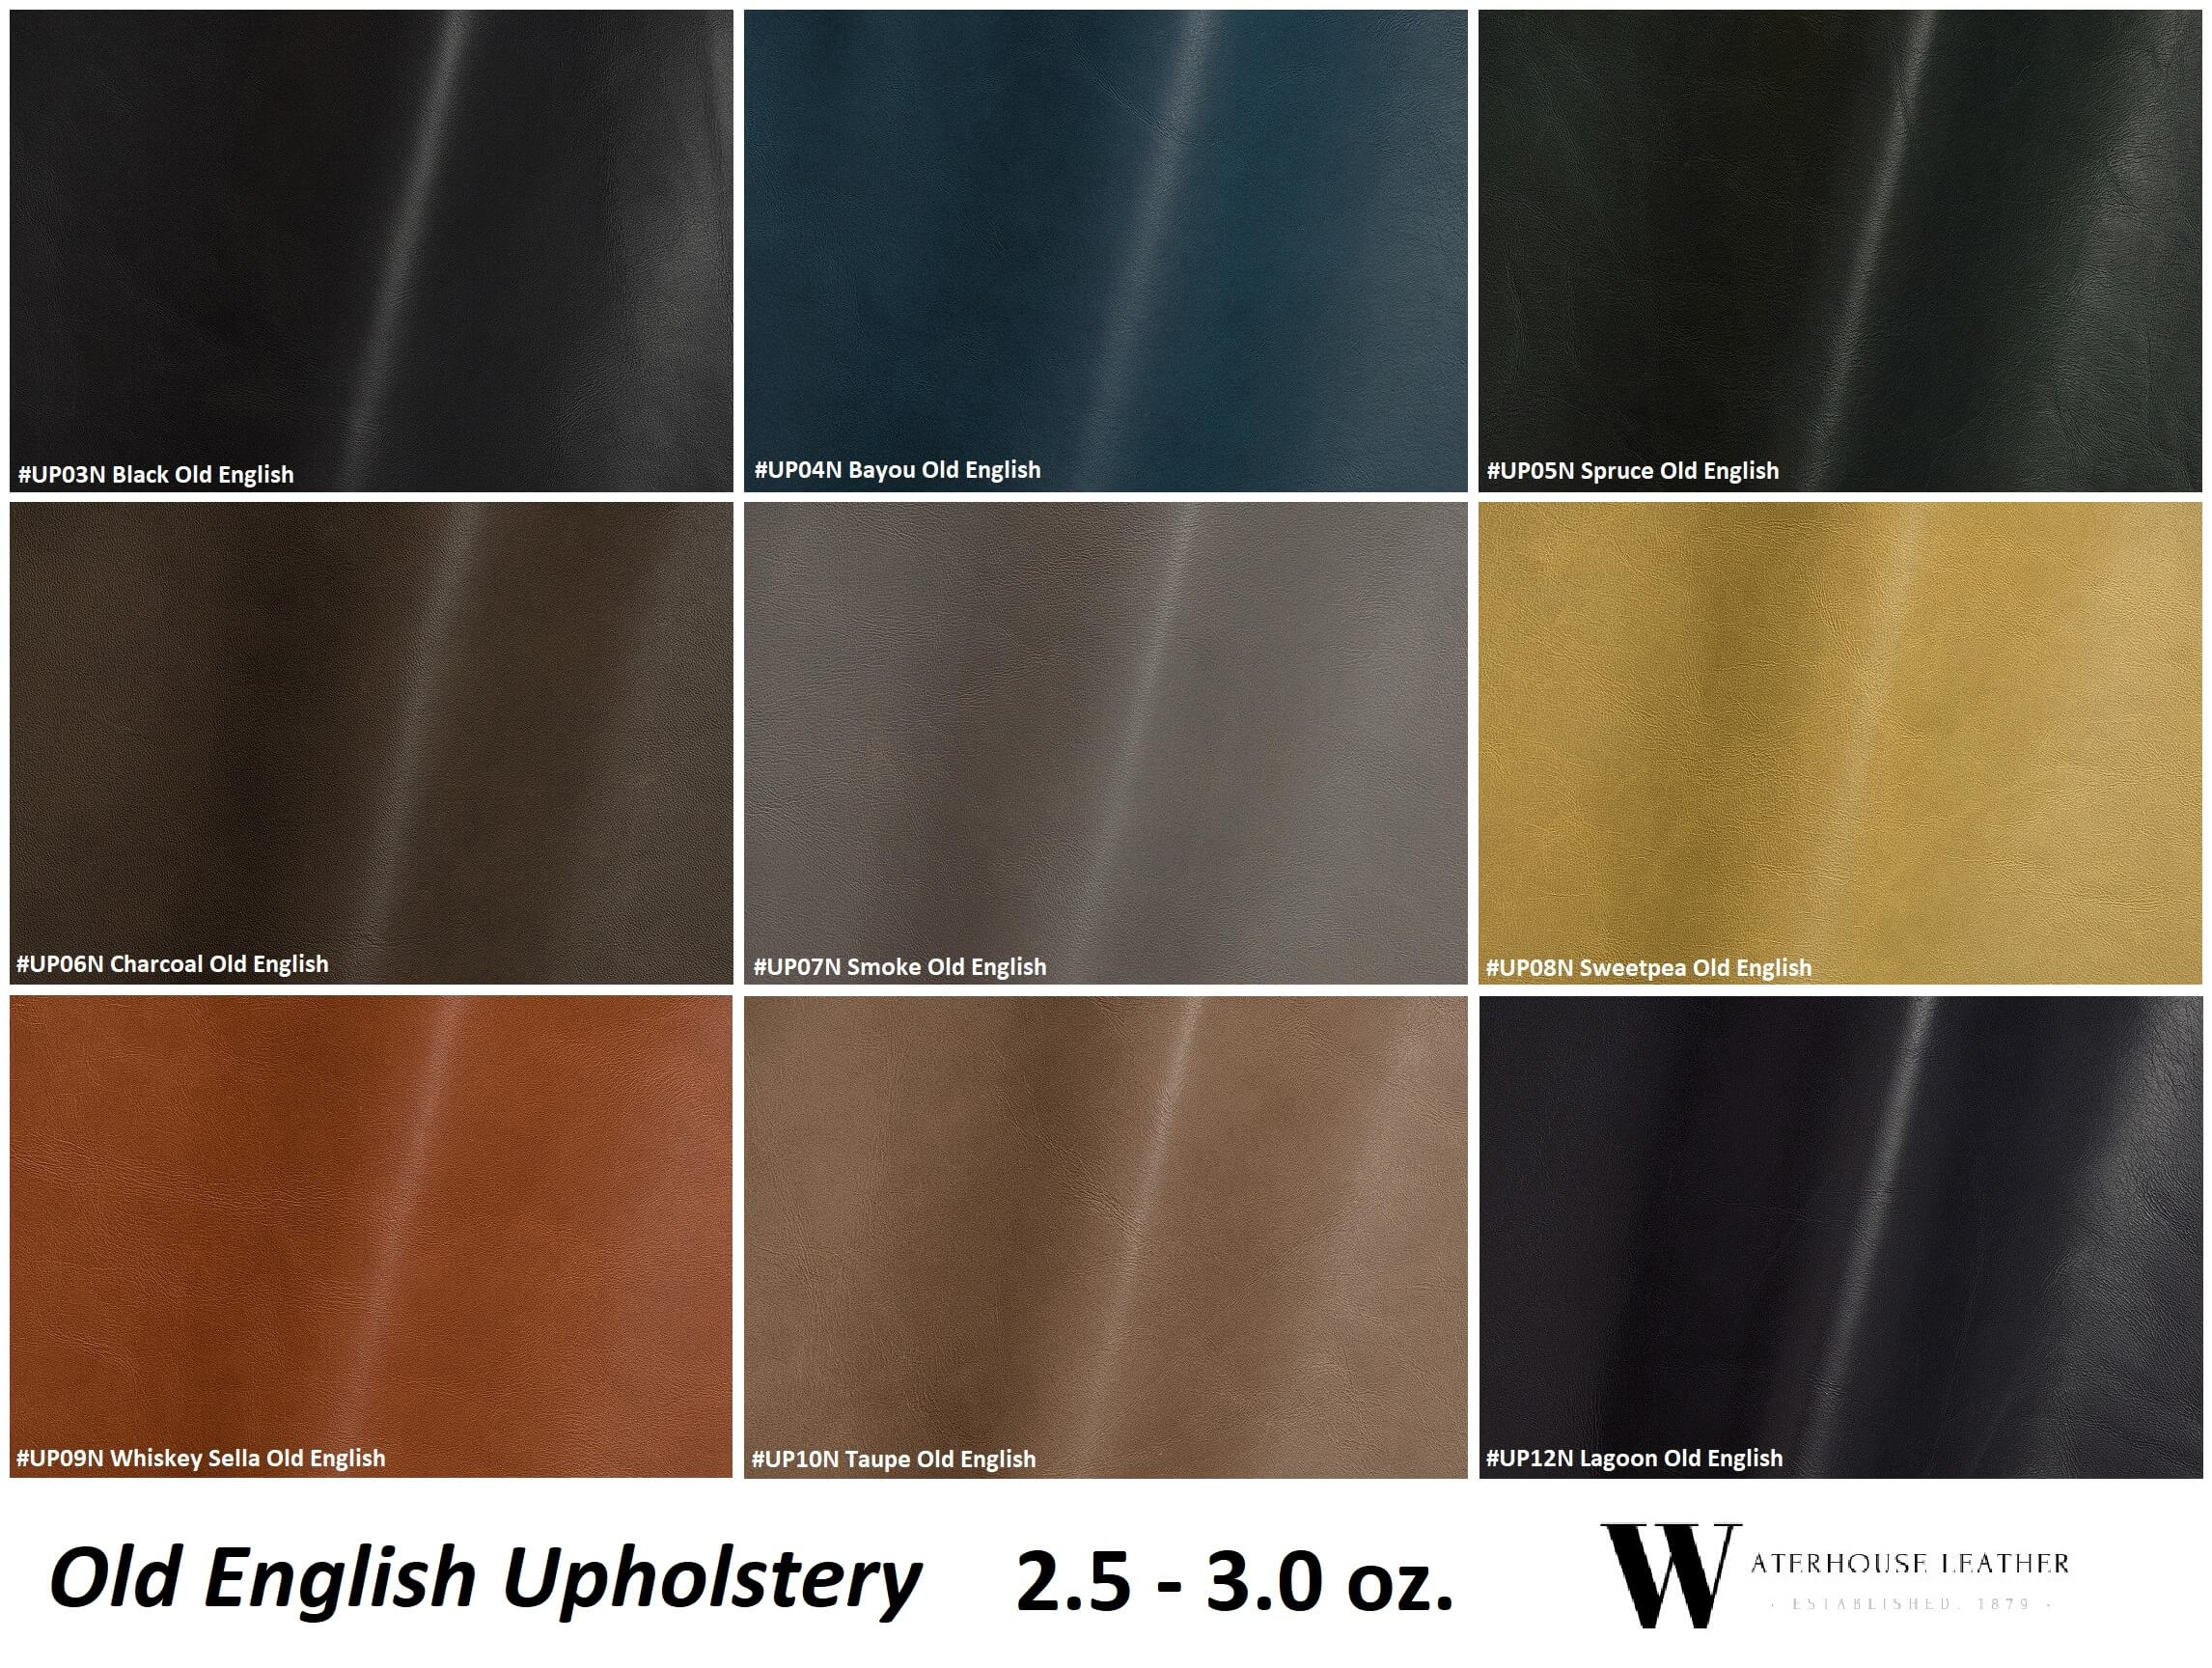 Old English Upholstery Leather | Waterhouse Leather